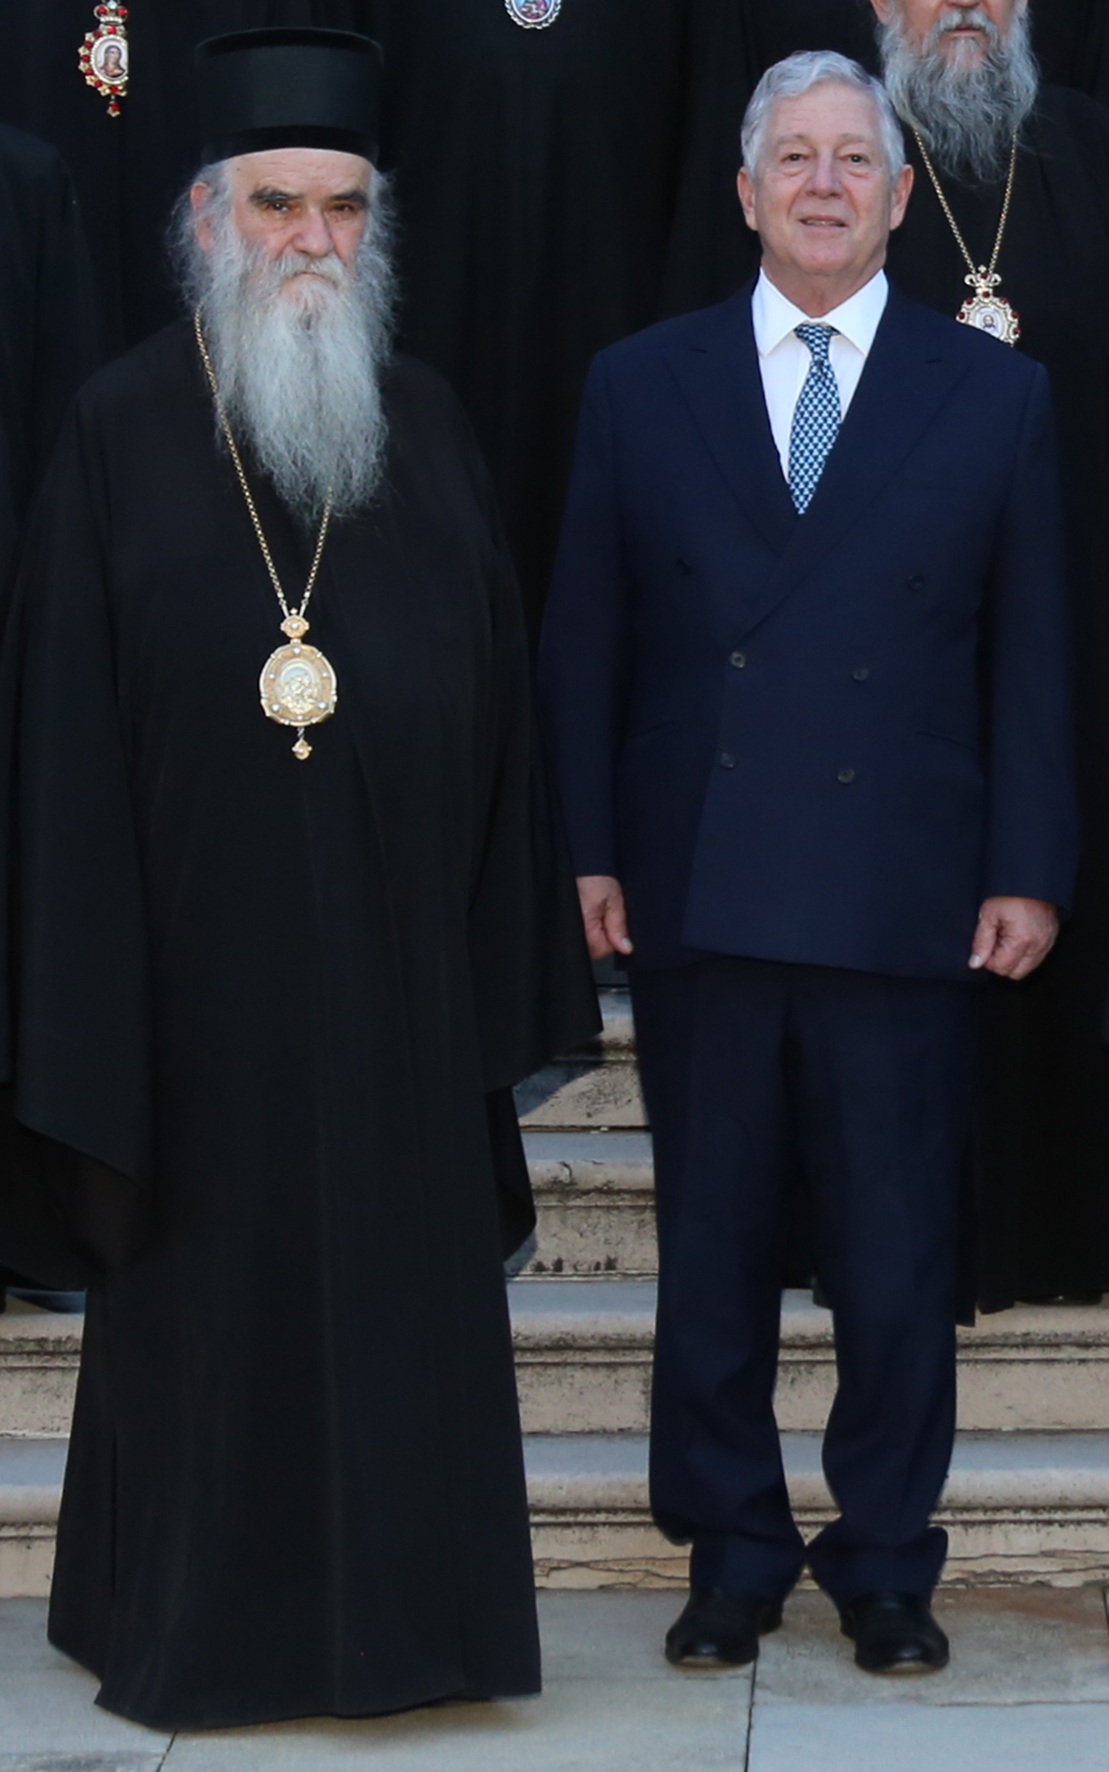 Crown Prince Alexander with the late Metropolitan Amfilohije of Montenegro